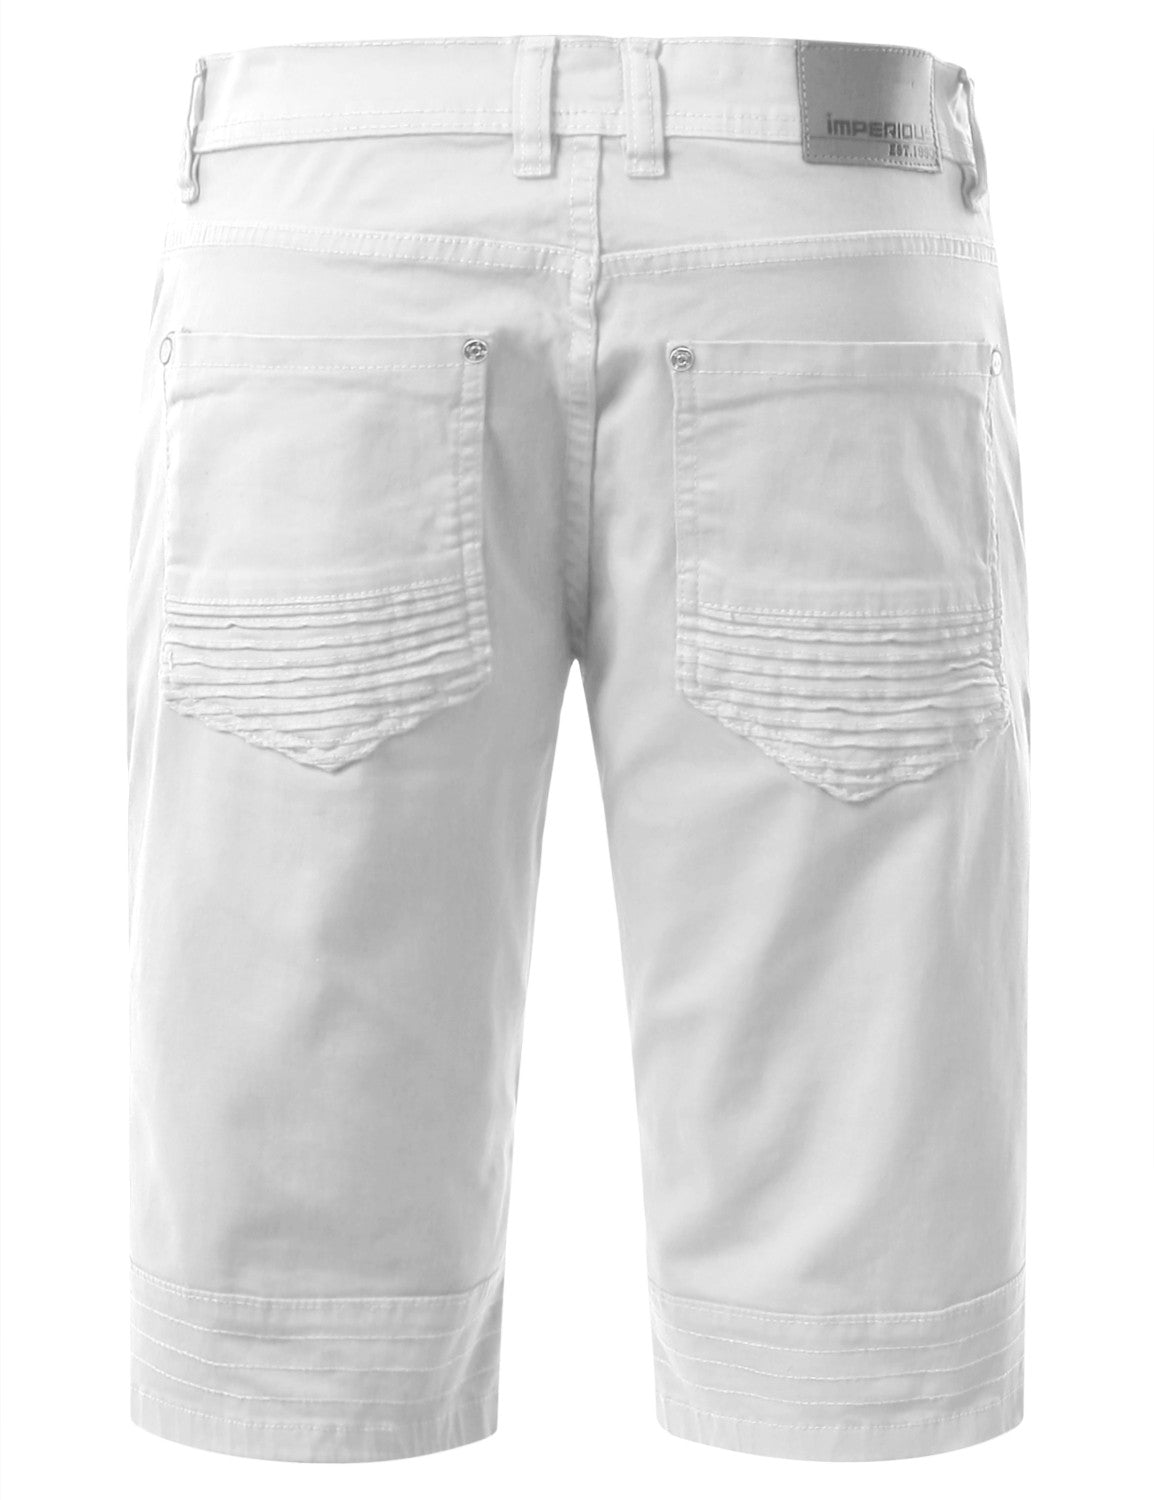 Biker Denim Shorts - URBANCREWS - 6